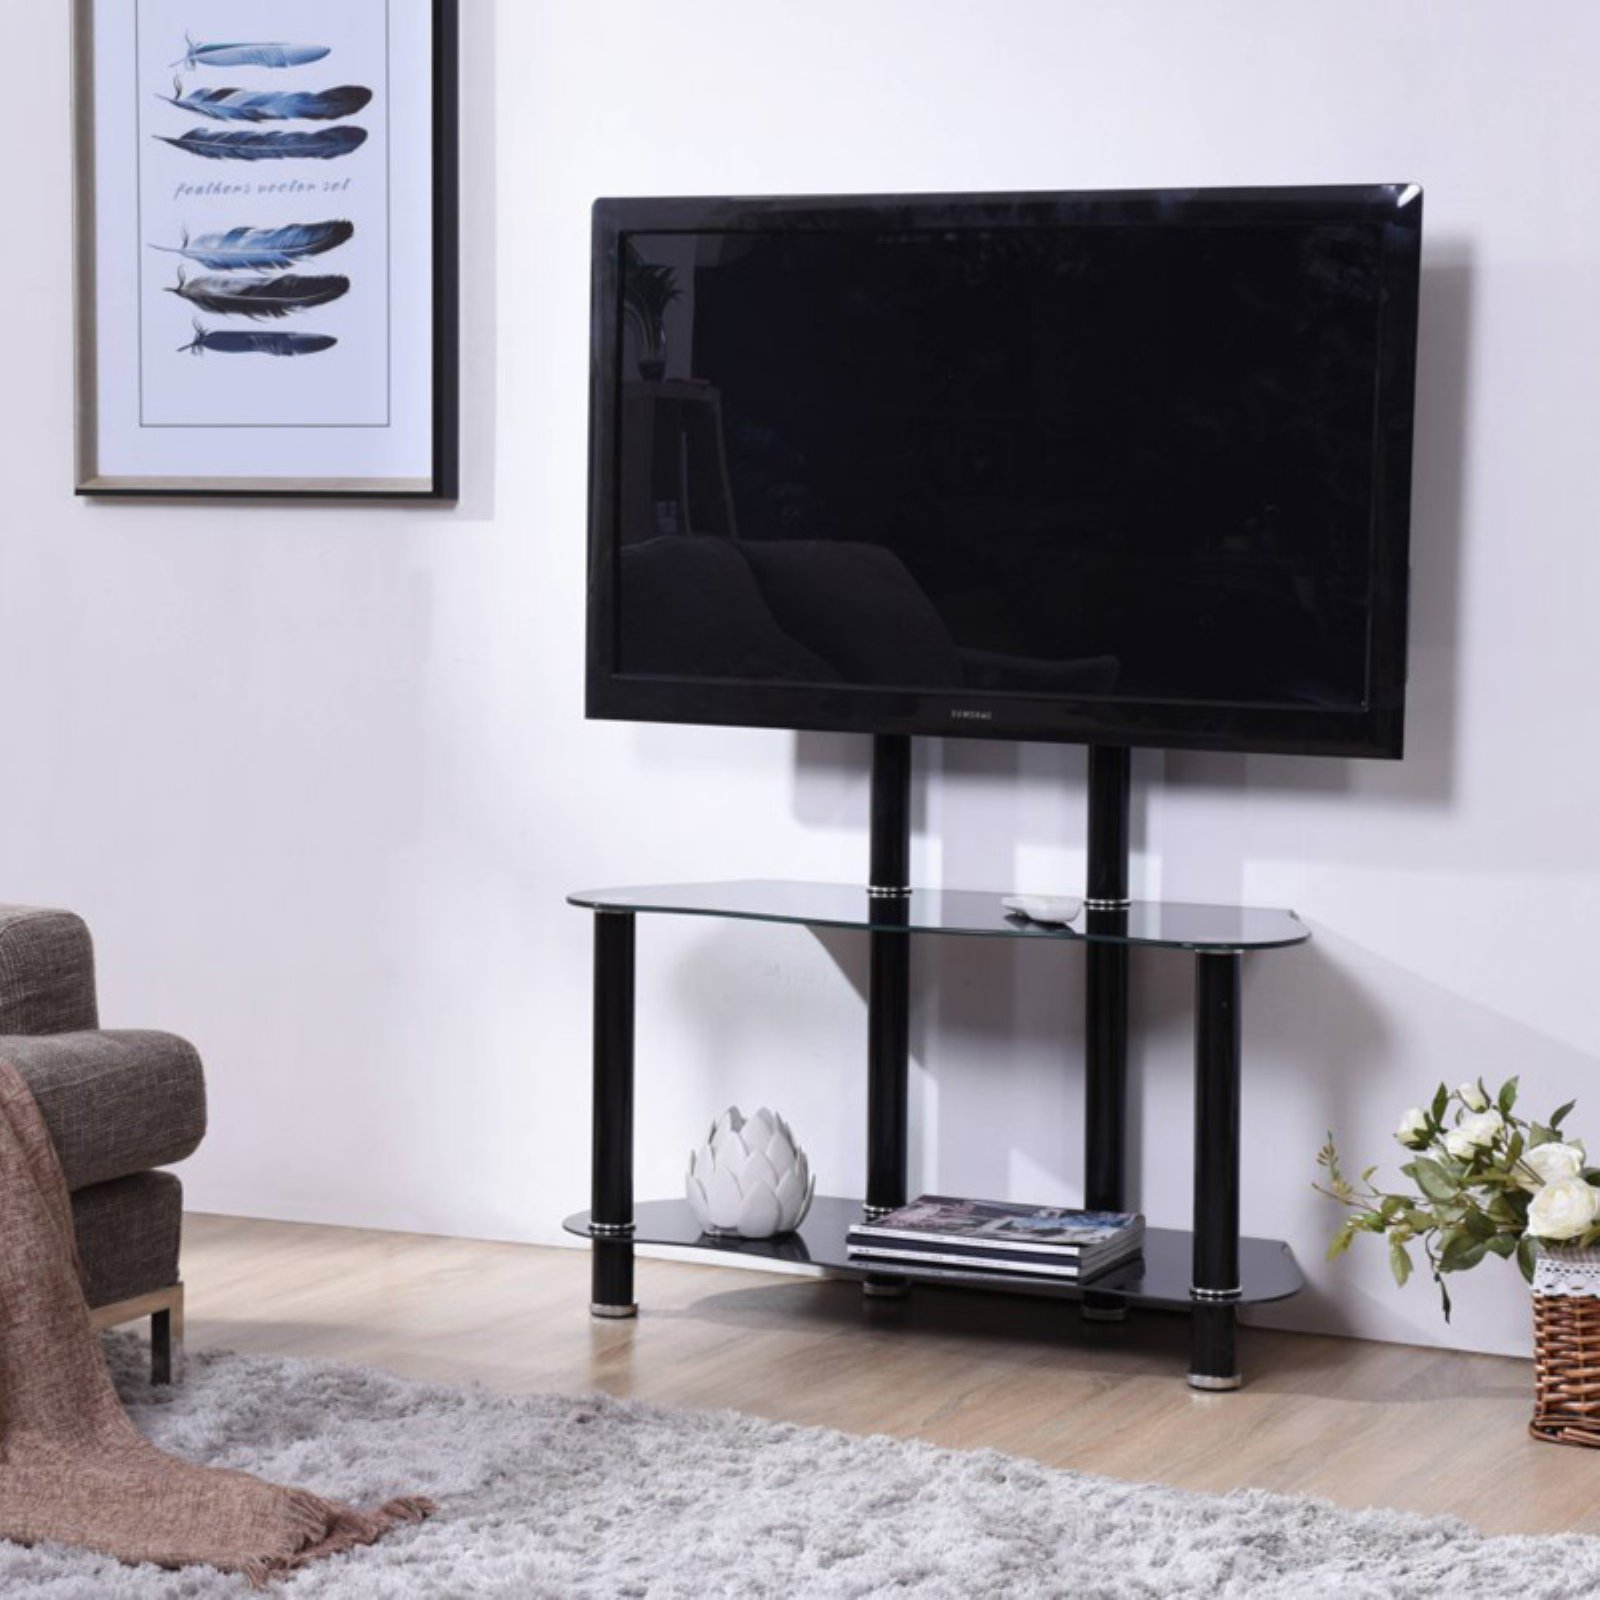 Hodedah Imports 35 in. TV Stand with Mount